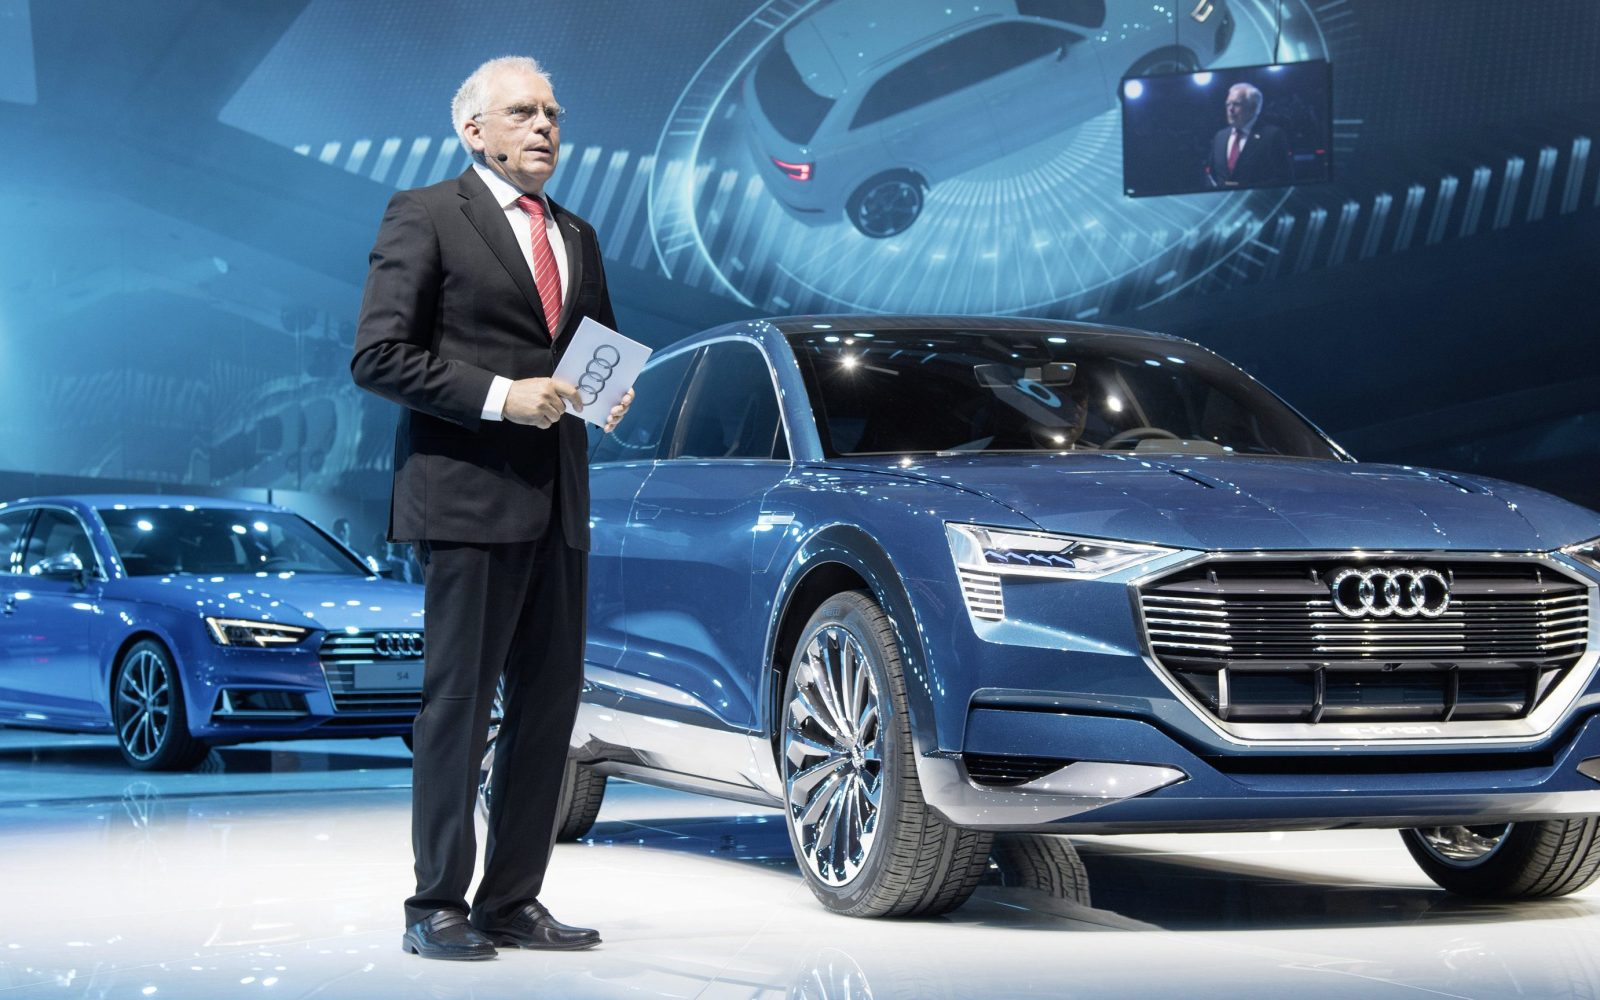 audi announces an electric vehicle push in china, will introduce 5